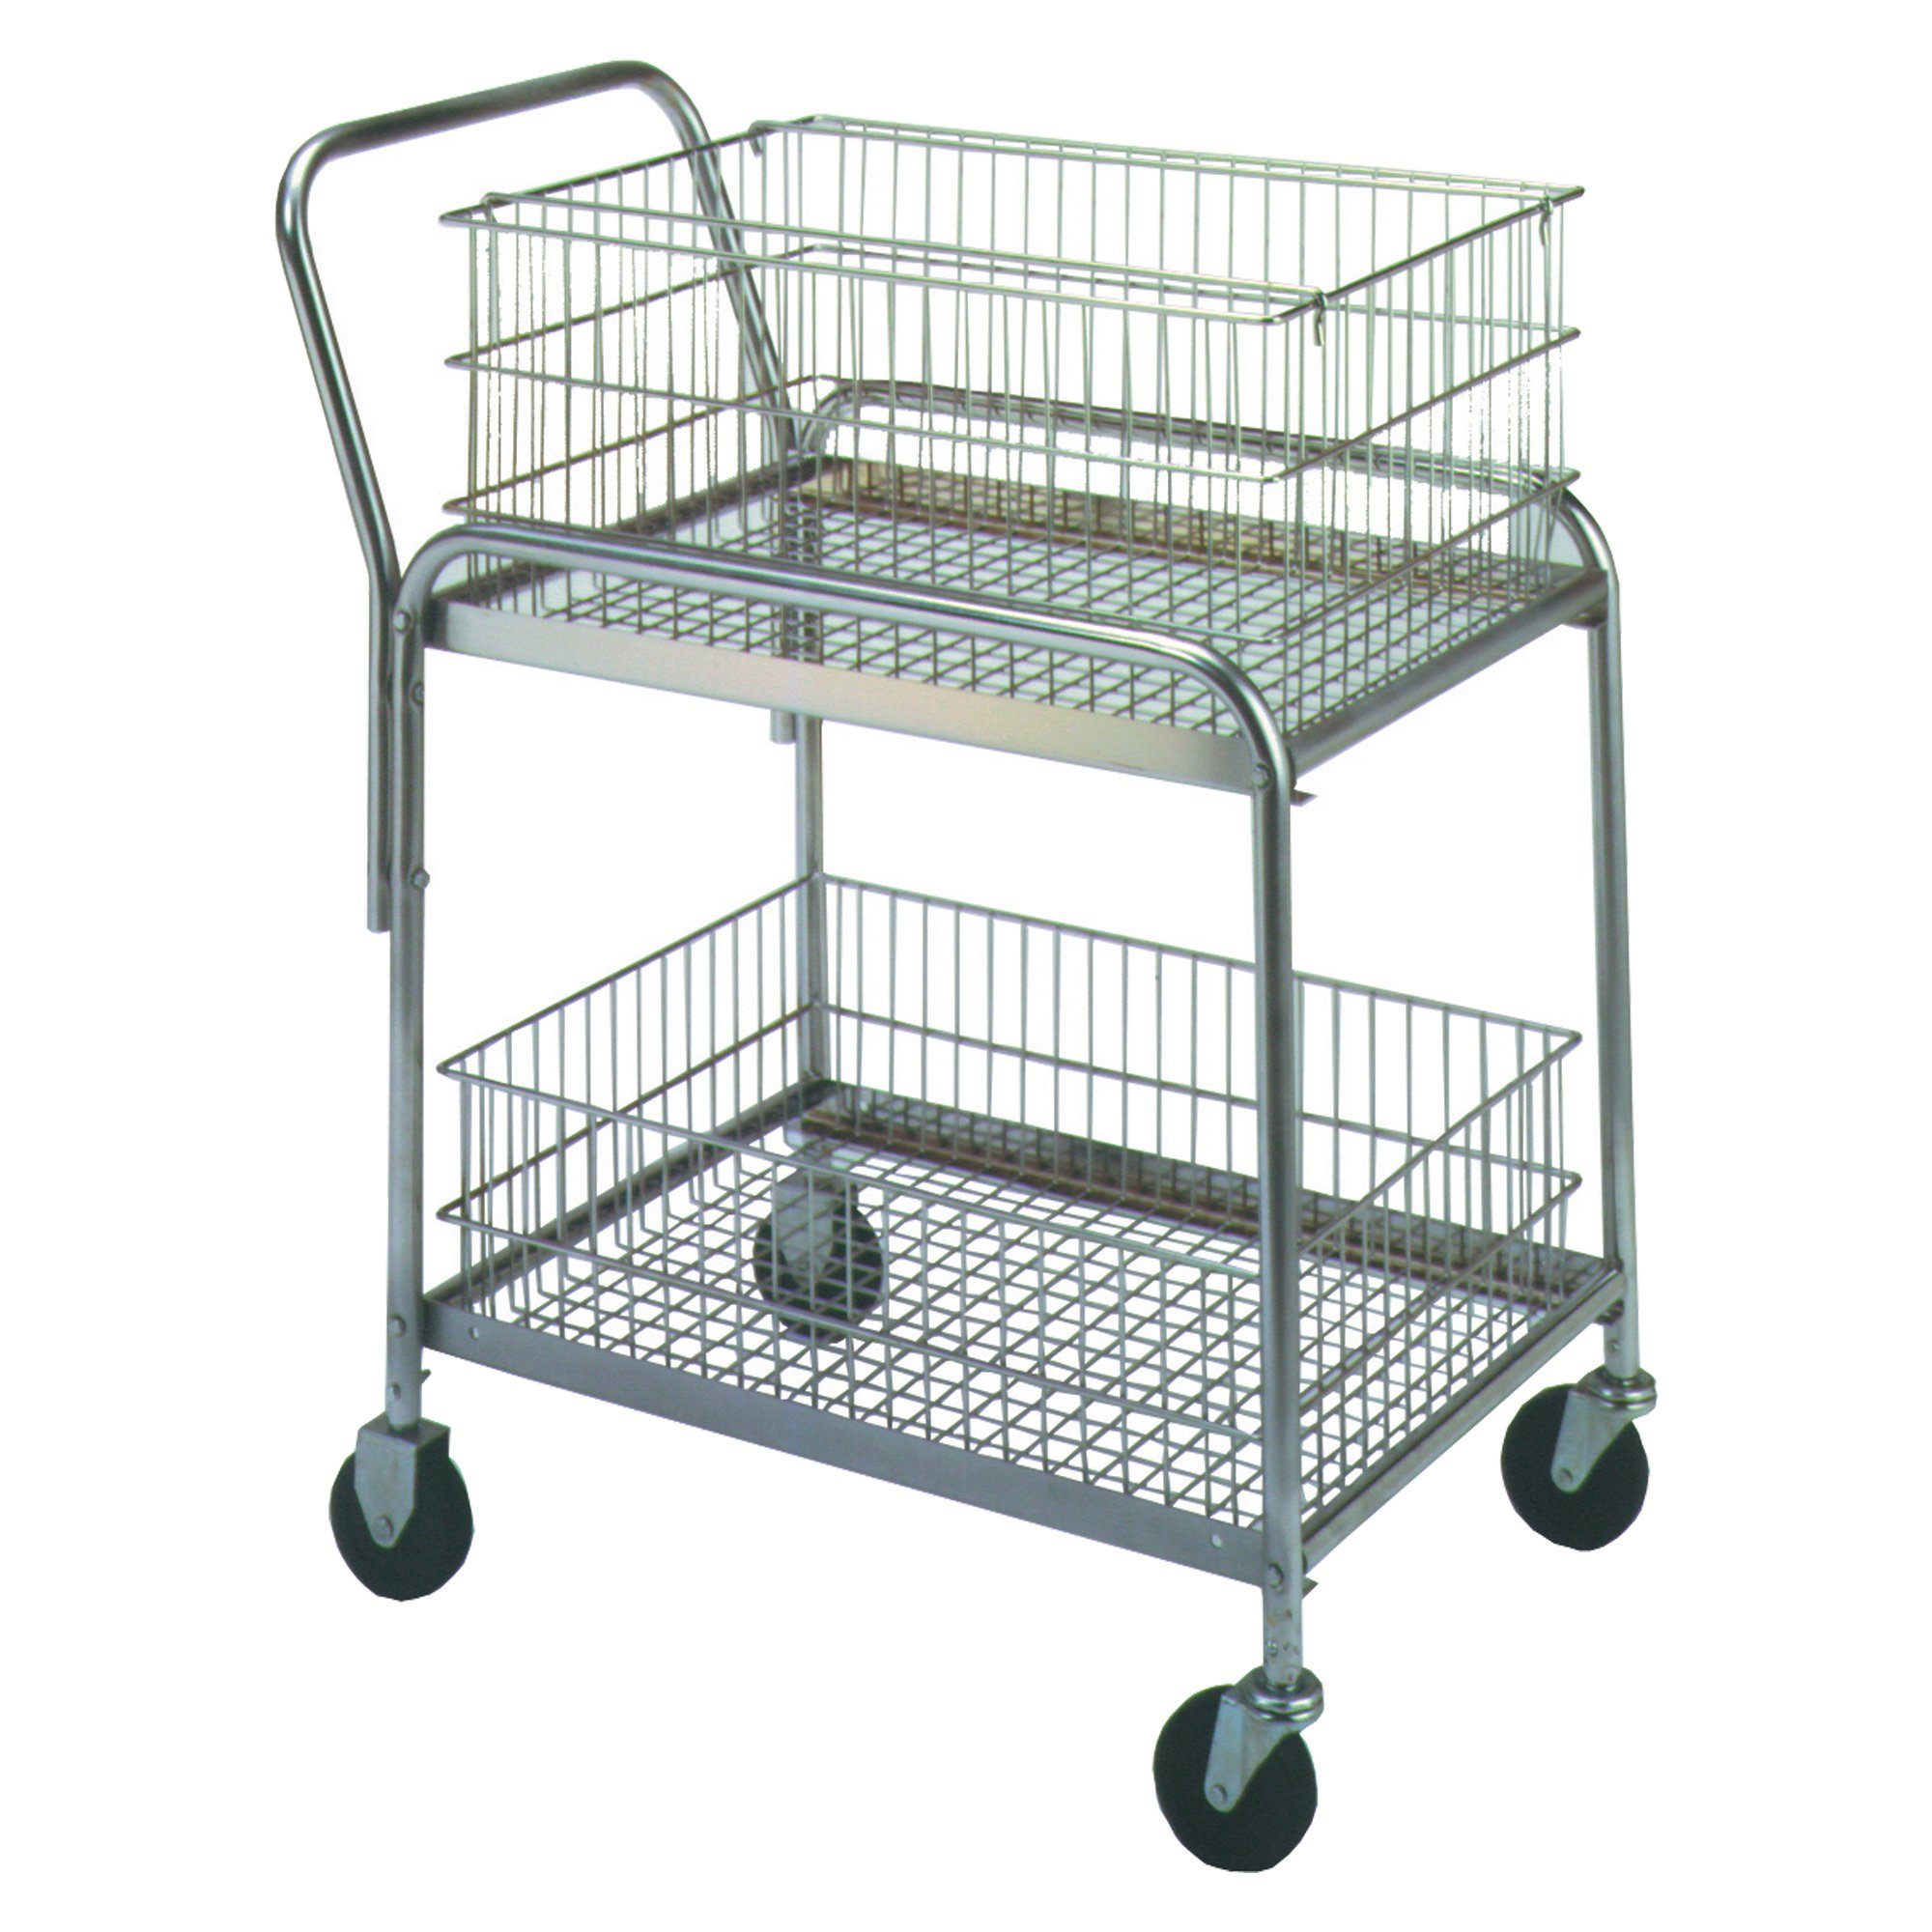 Boxes Fast Mail Cart, 33'' x 20'' x 37 1/2'', Silver, (Pack of 1) by Boxes Fast